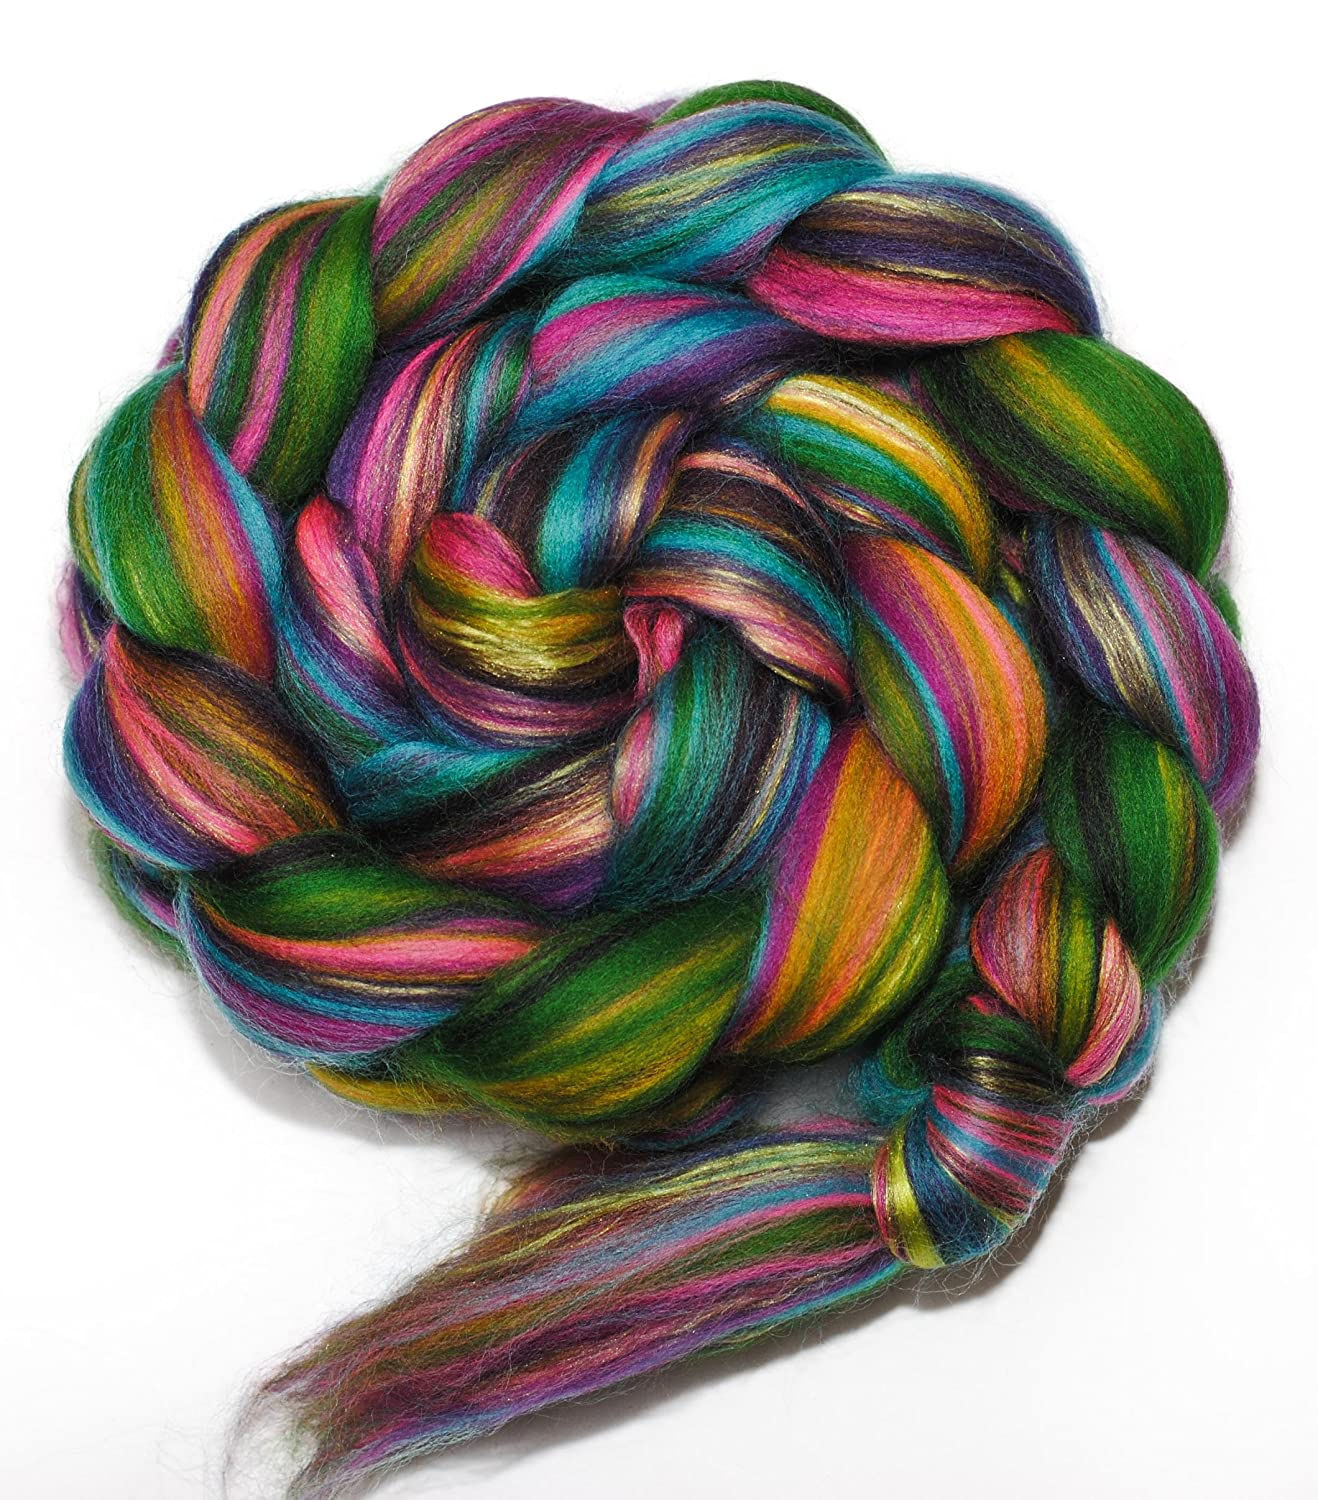 FOREST JEWELS Merino and Mulberry Silk Combed Top Wool Roving for Spinning or Felting BEESYBEE FIBERS